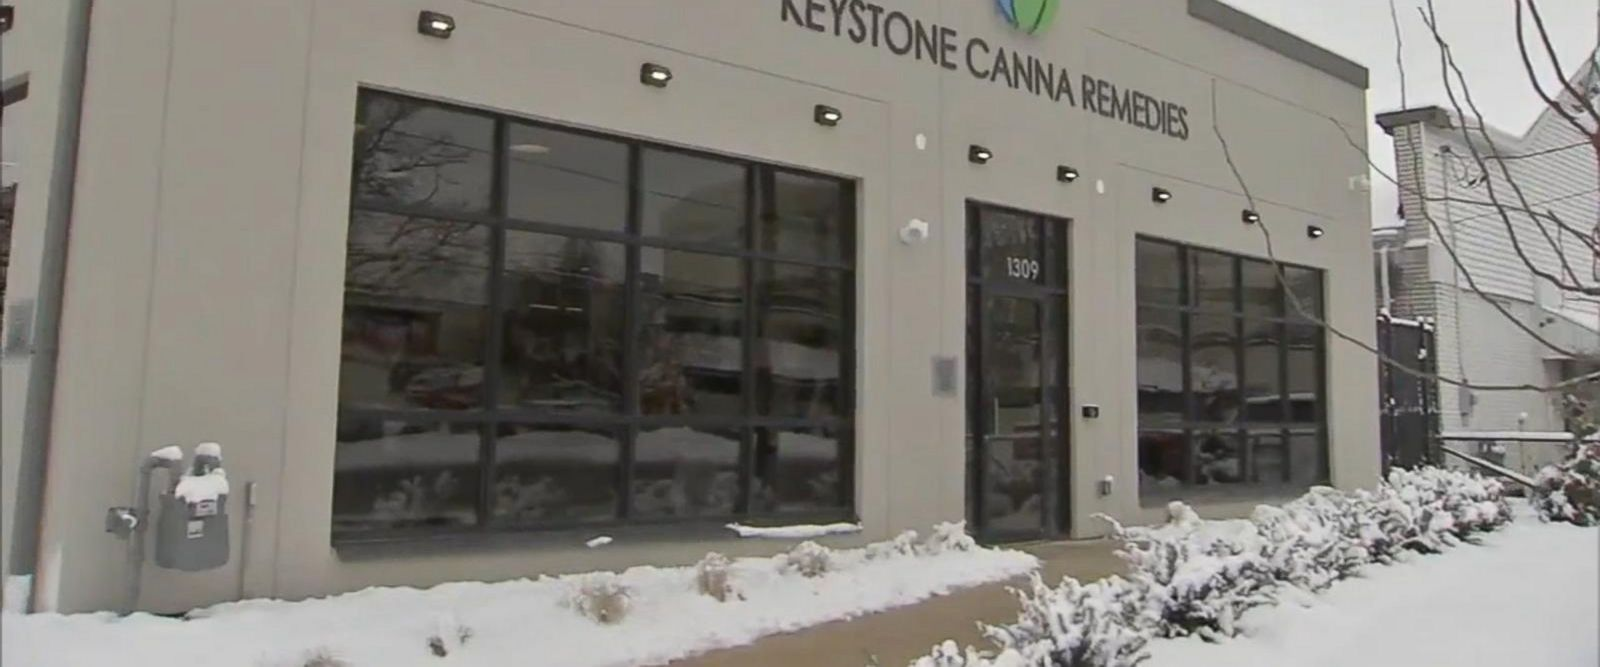 VIDEO: When Pennsylvania's first ever medical marijuana dispensary, Keystone Canna Remedies, opened its doors in Bethlehem on January 17, many welcomed its arrival with open arms, including former Philadelphia Flyers winger Riley Cote.